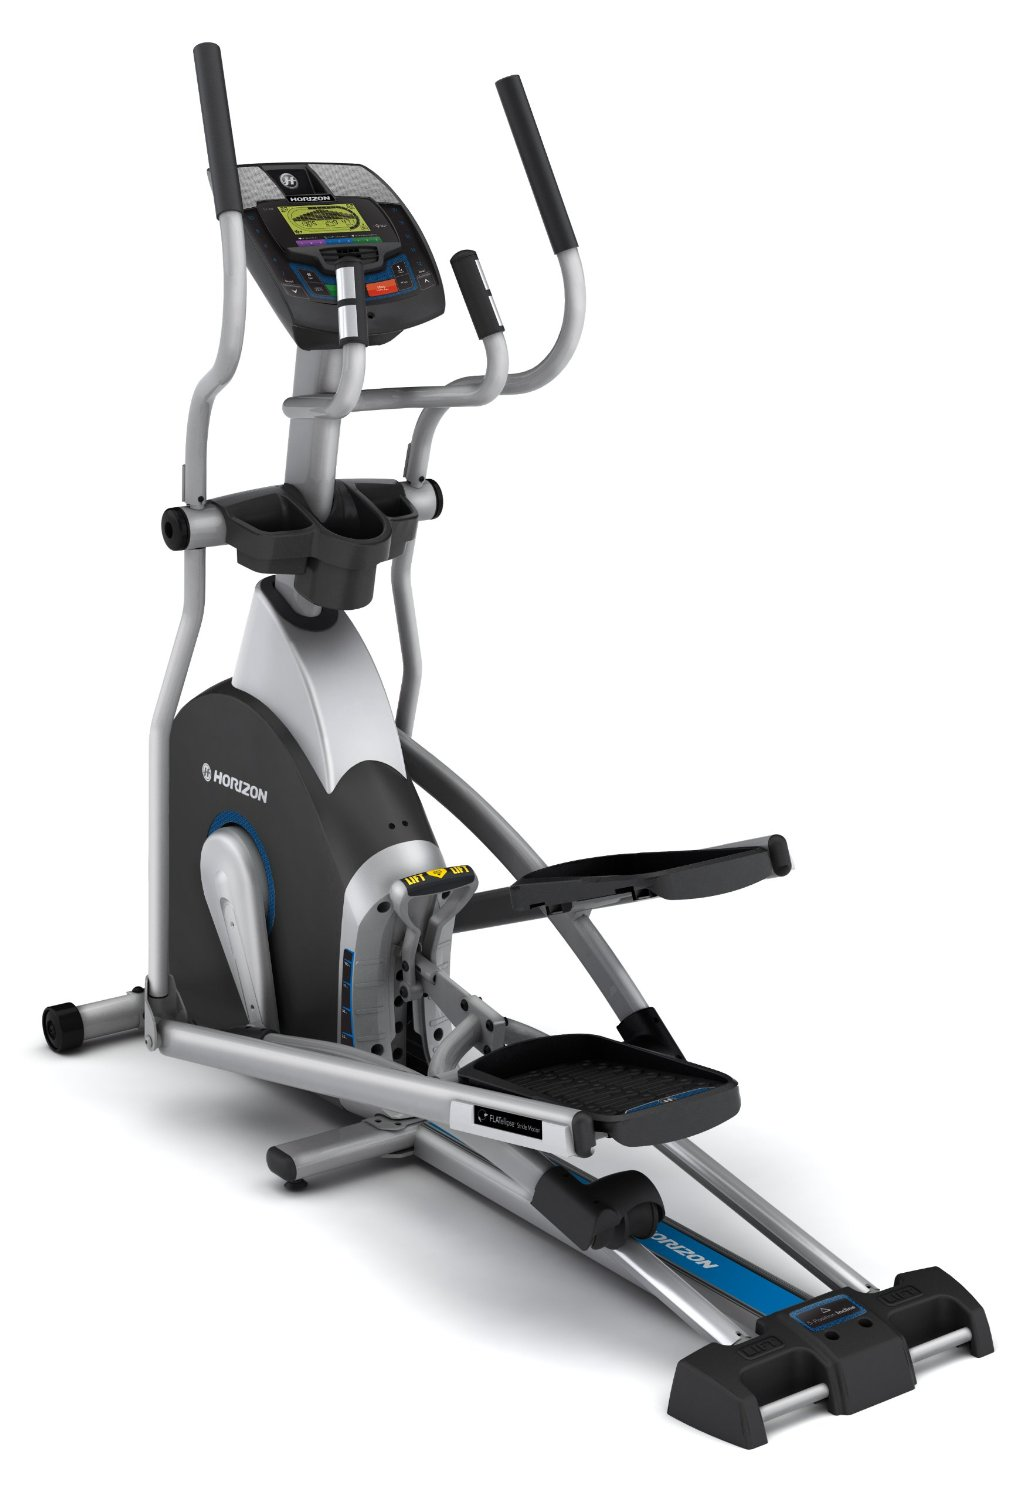 Horizon fitness 507 инструкция